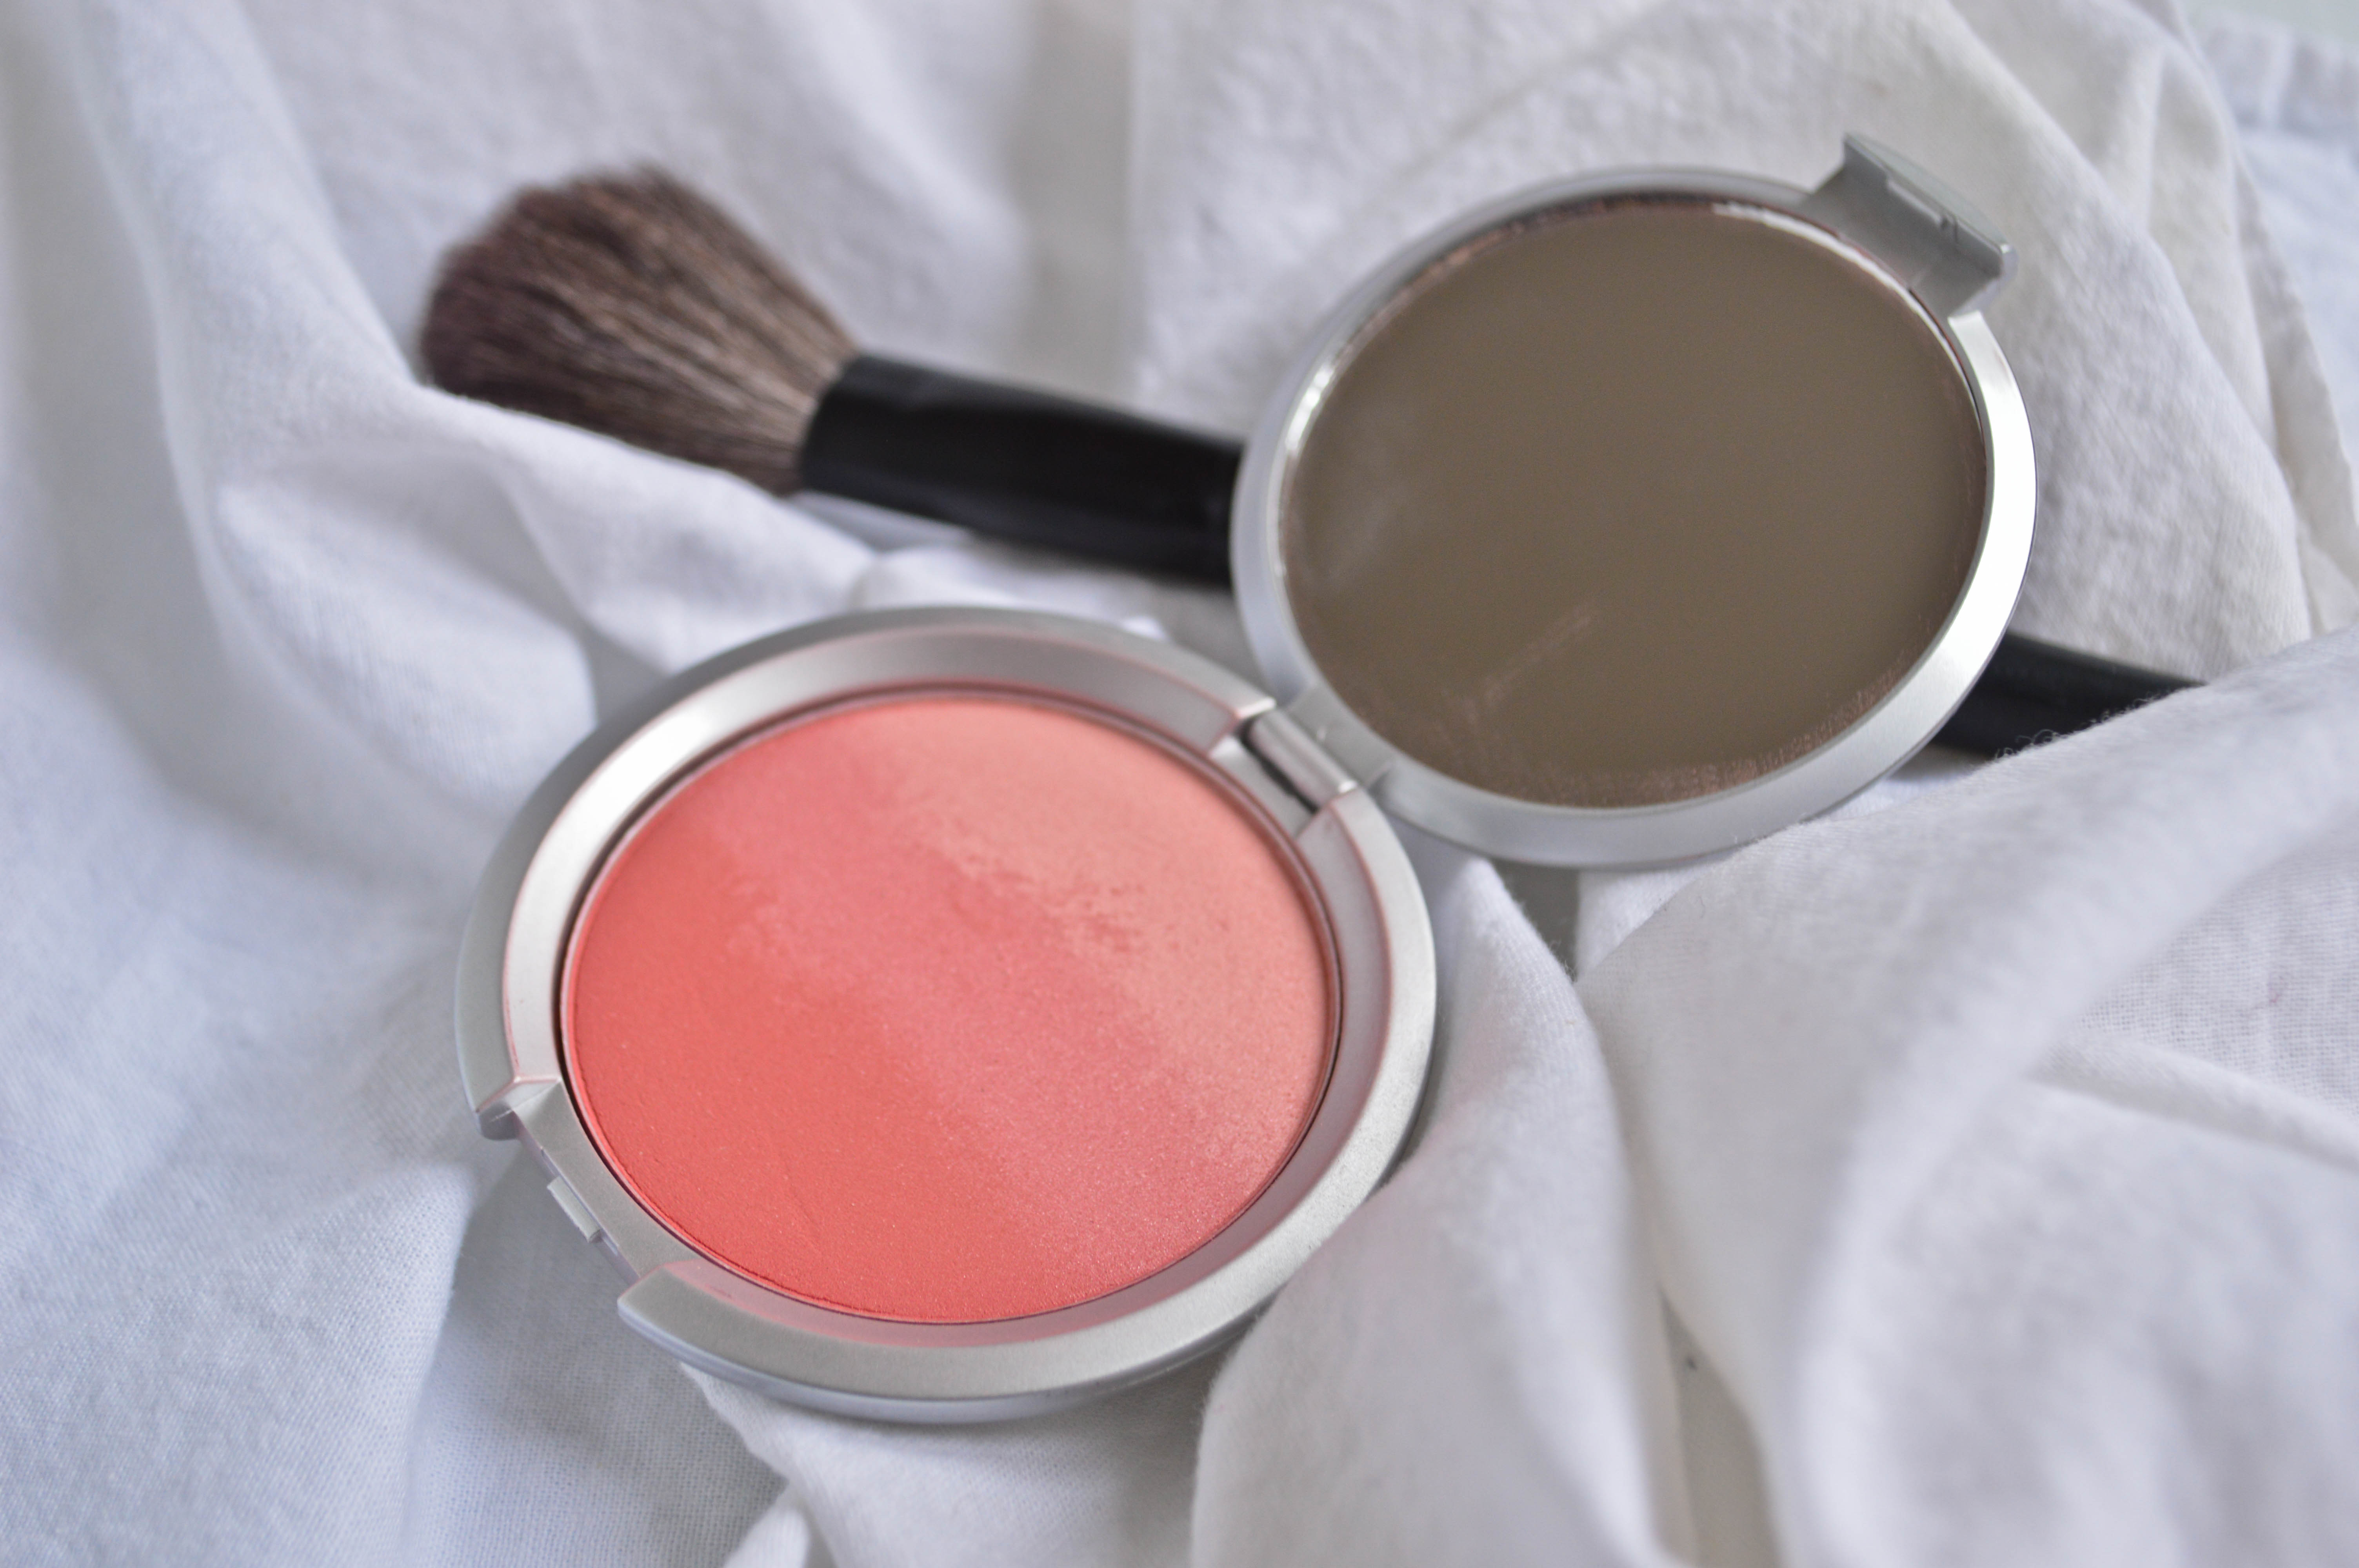 Rave: IT Cosmetics CC+ Radience Ombre Blush